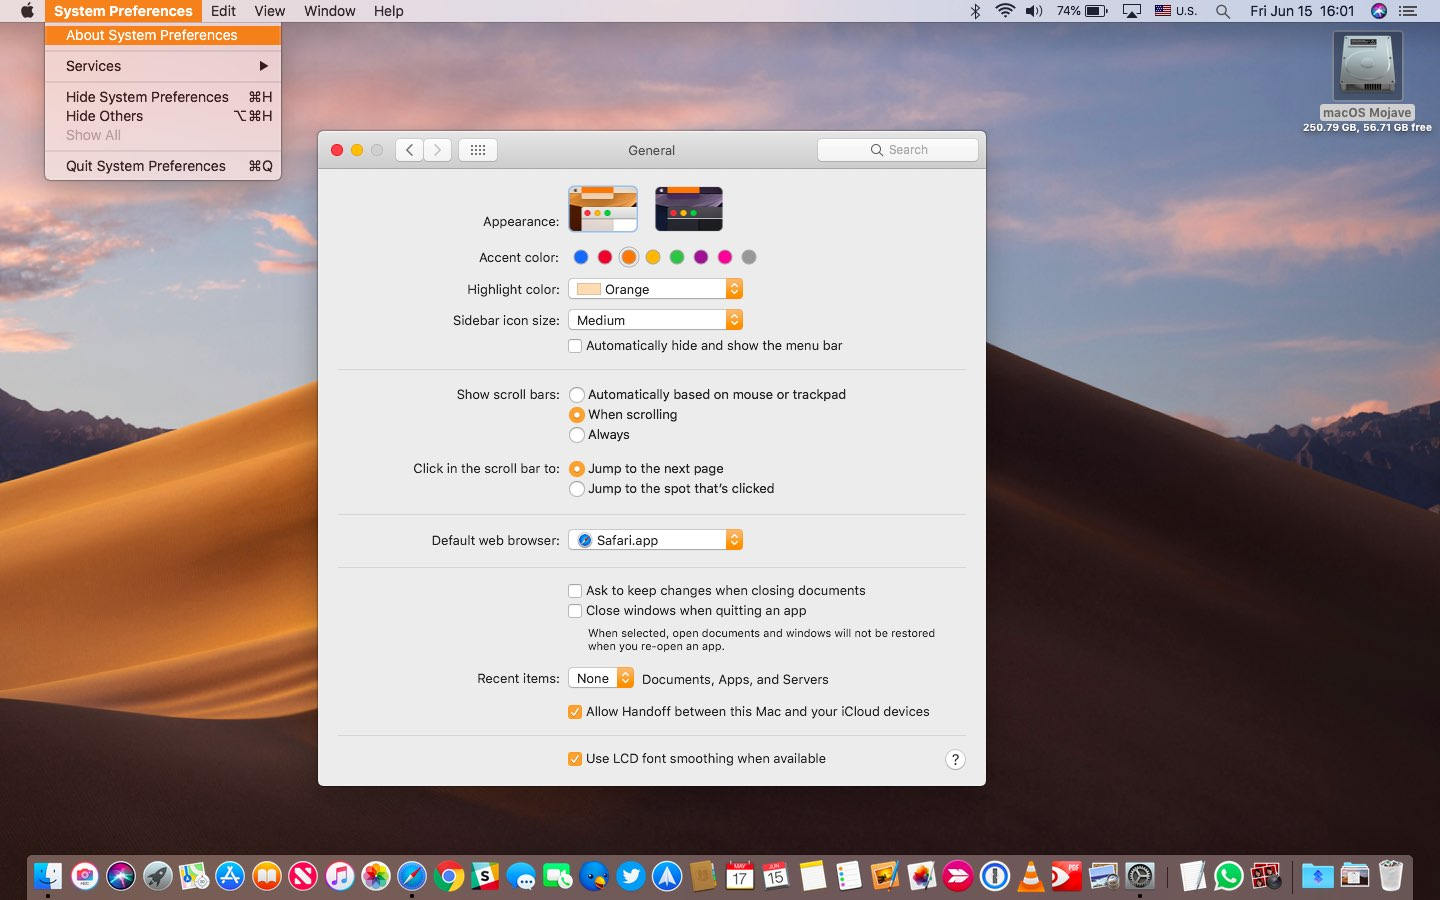 macOS Mojave Light Mode with the orange accent and highlight color